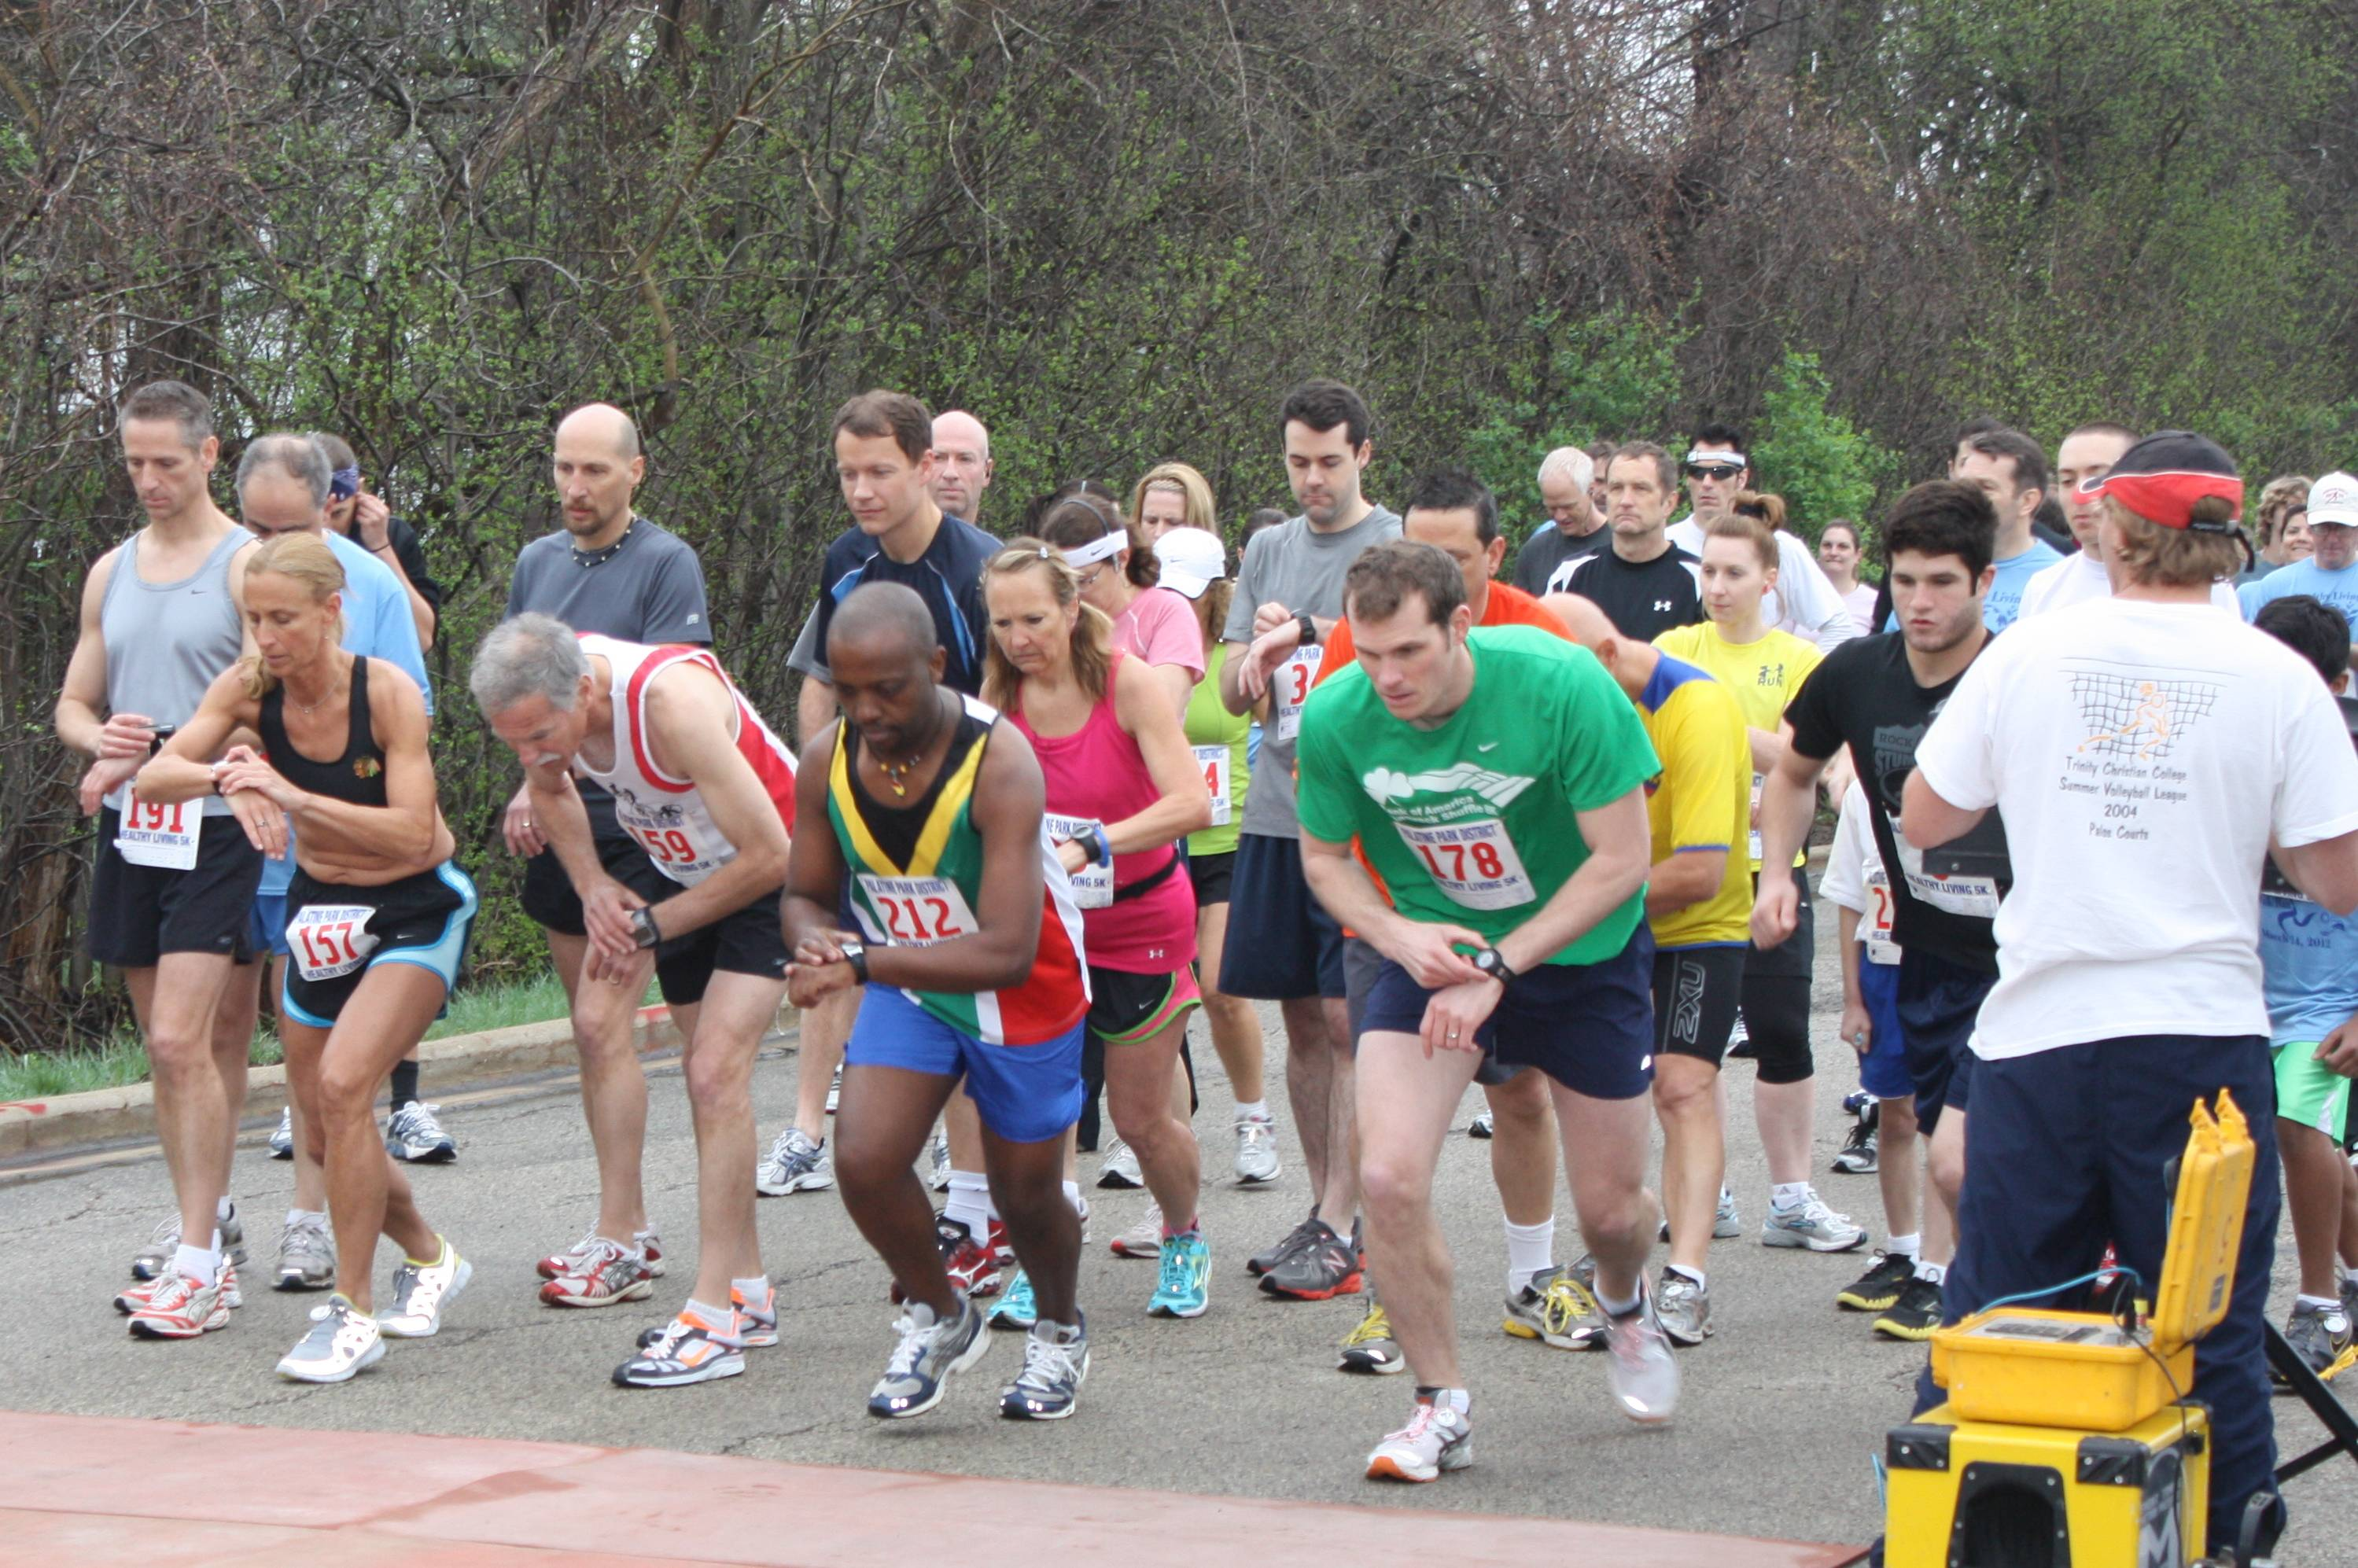 Runners at the start in 2012.